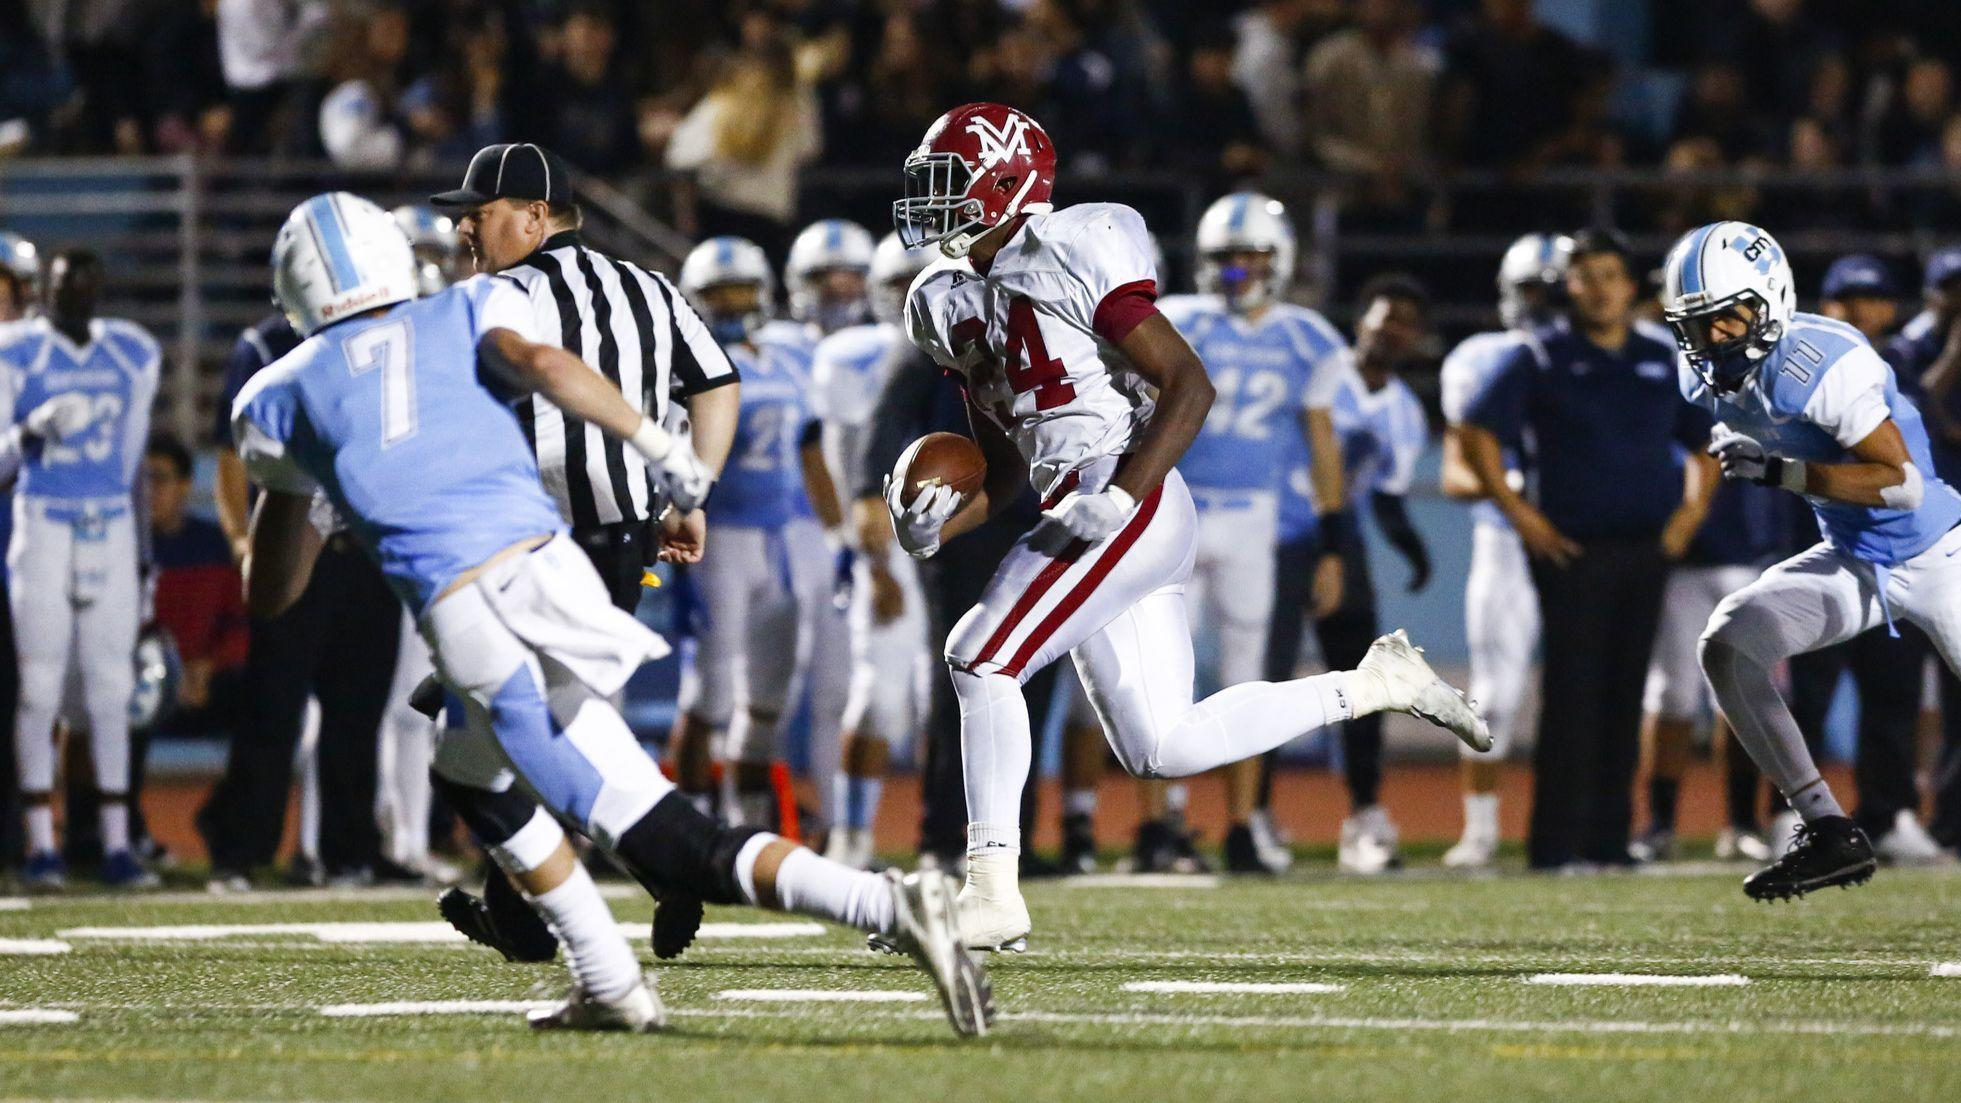 Sd-sp-sdsu-football-monte-vista-rb-jahmon-mcclendon-switches-commitment-to-ucla-0919